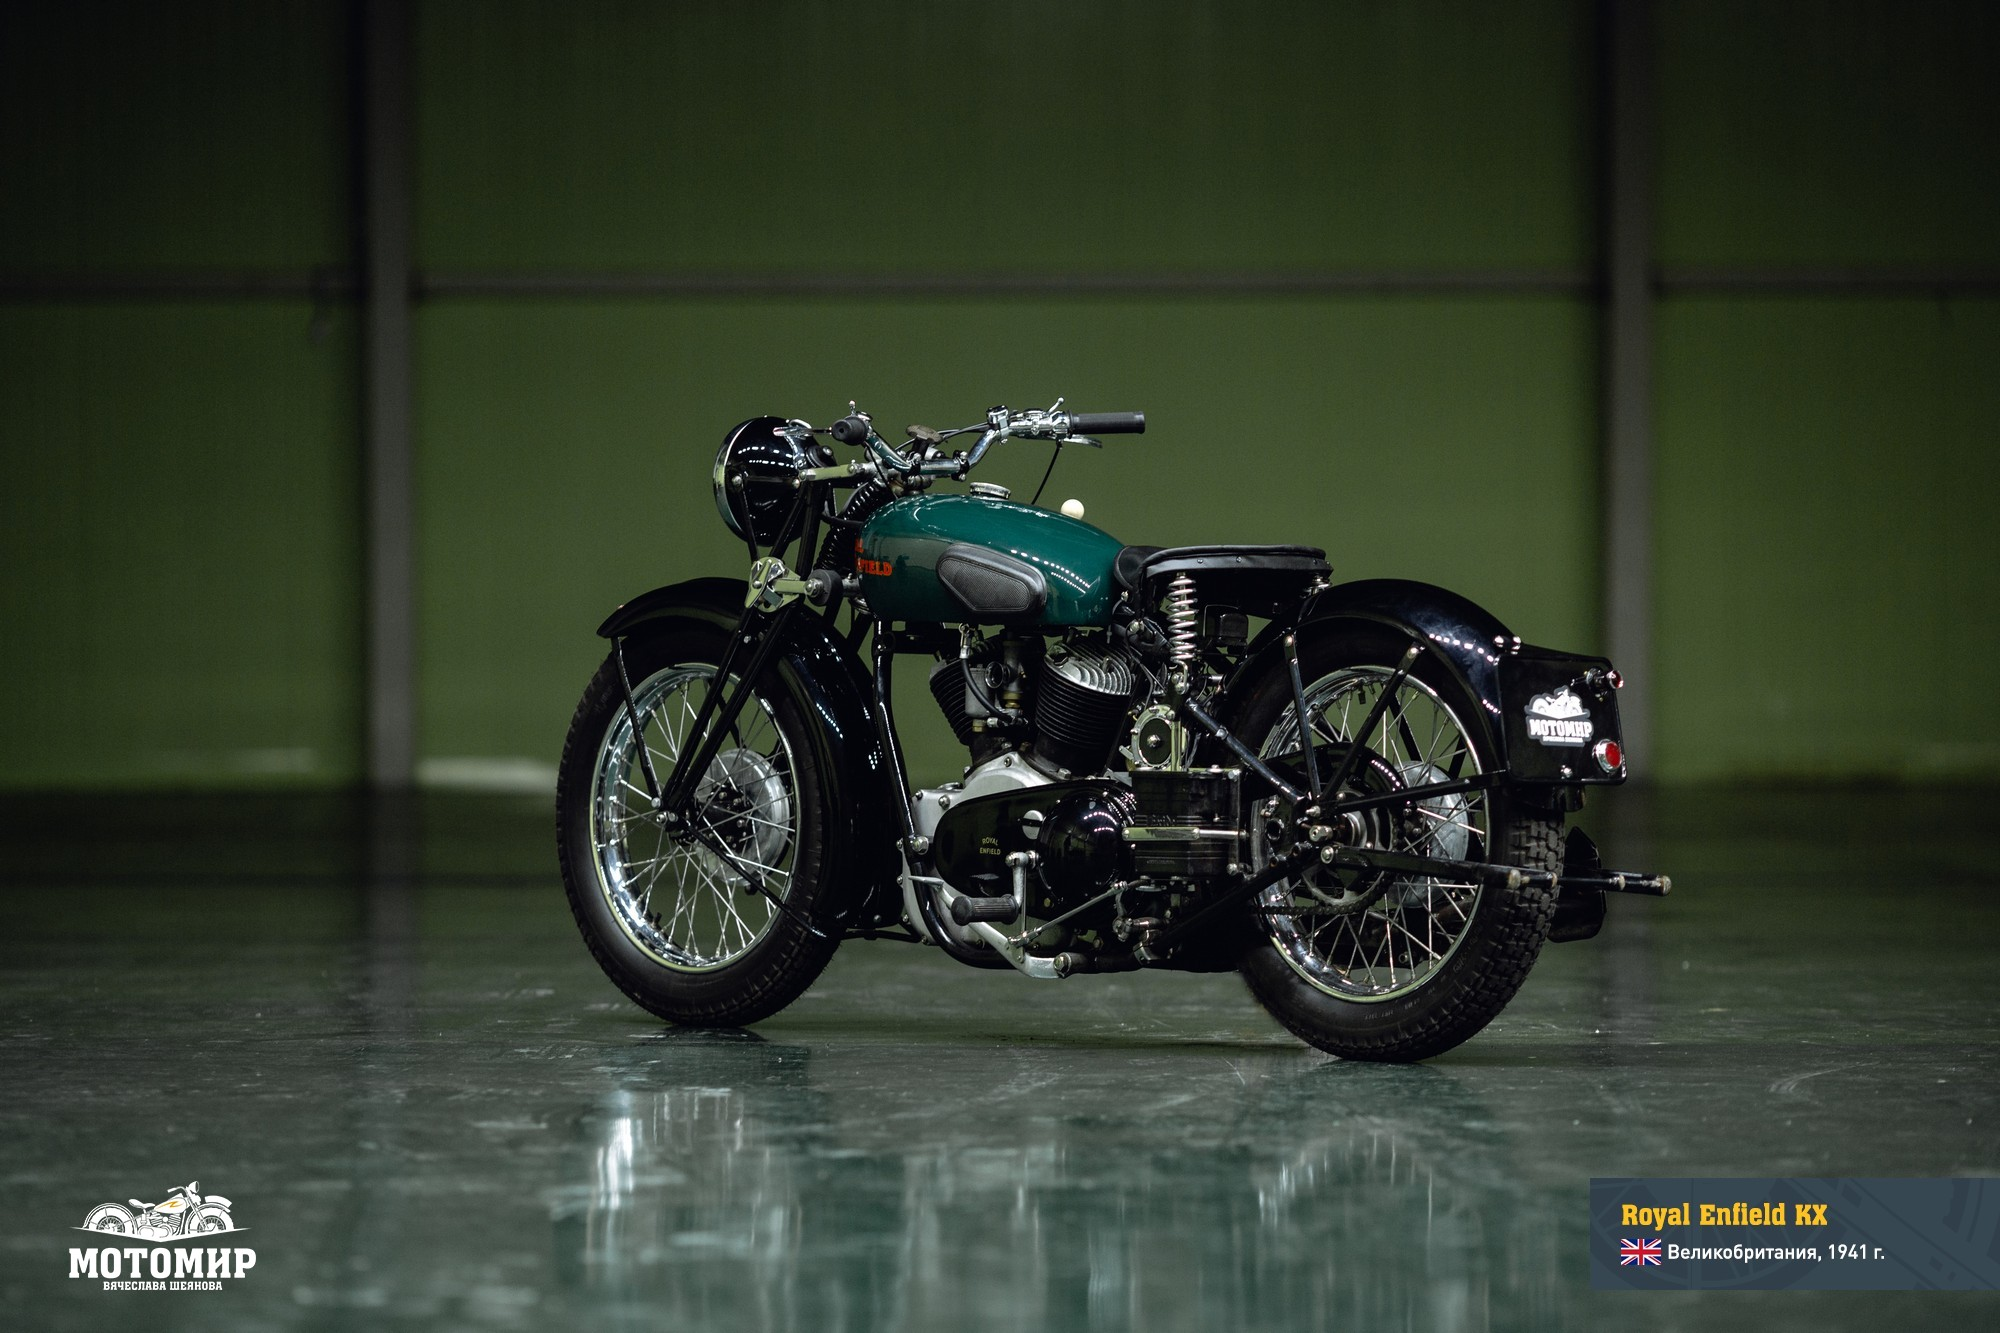 royal-enfield-kx-201601-web-02